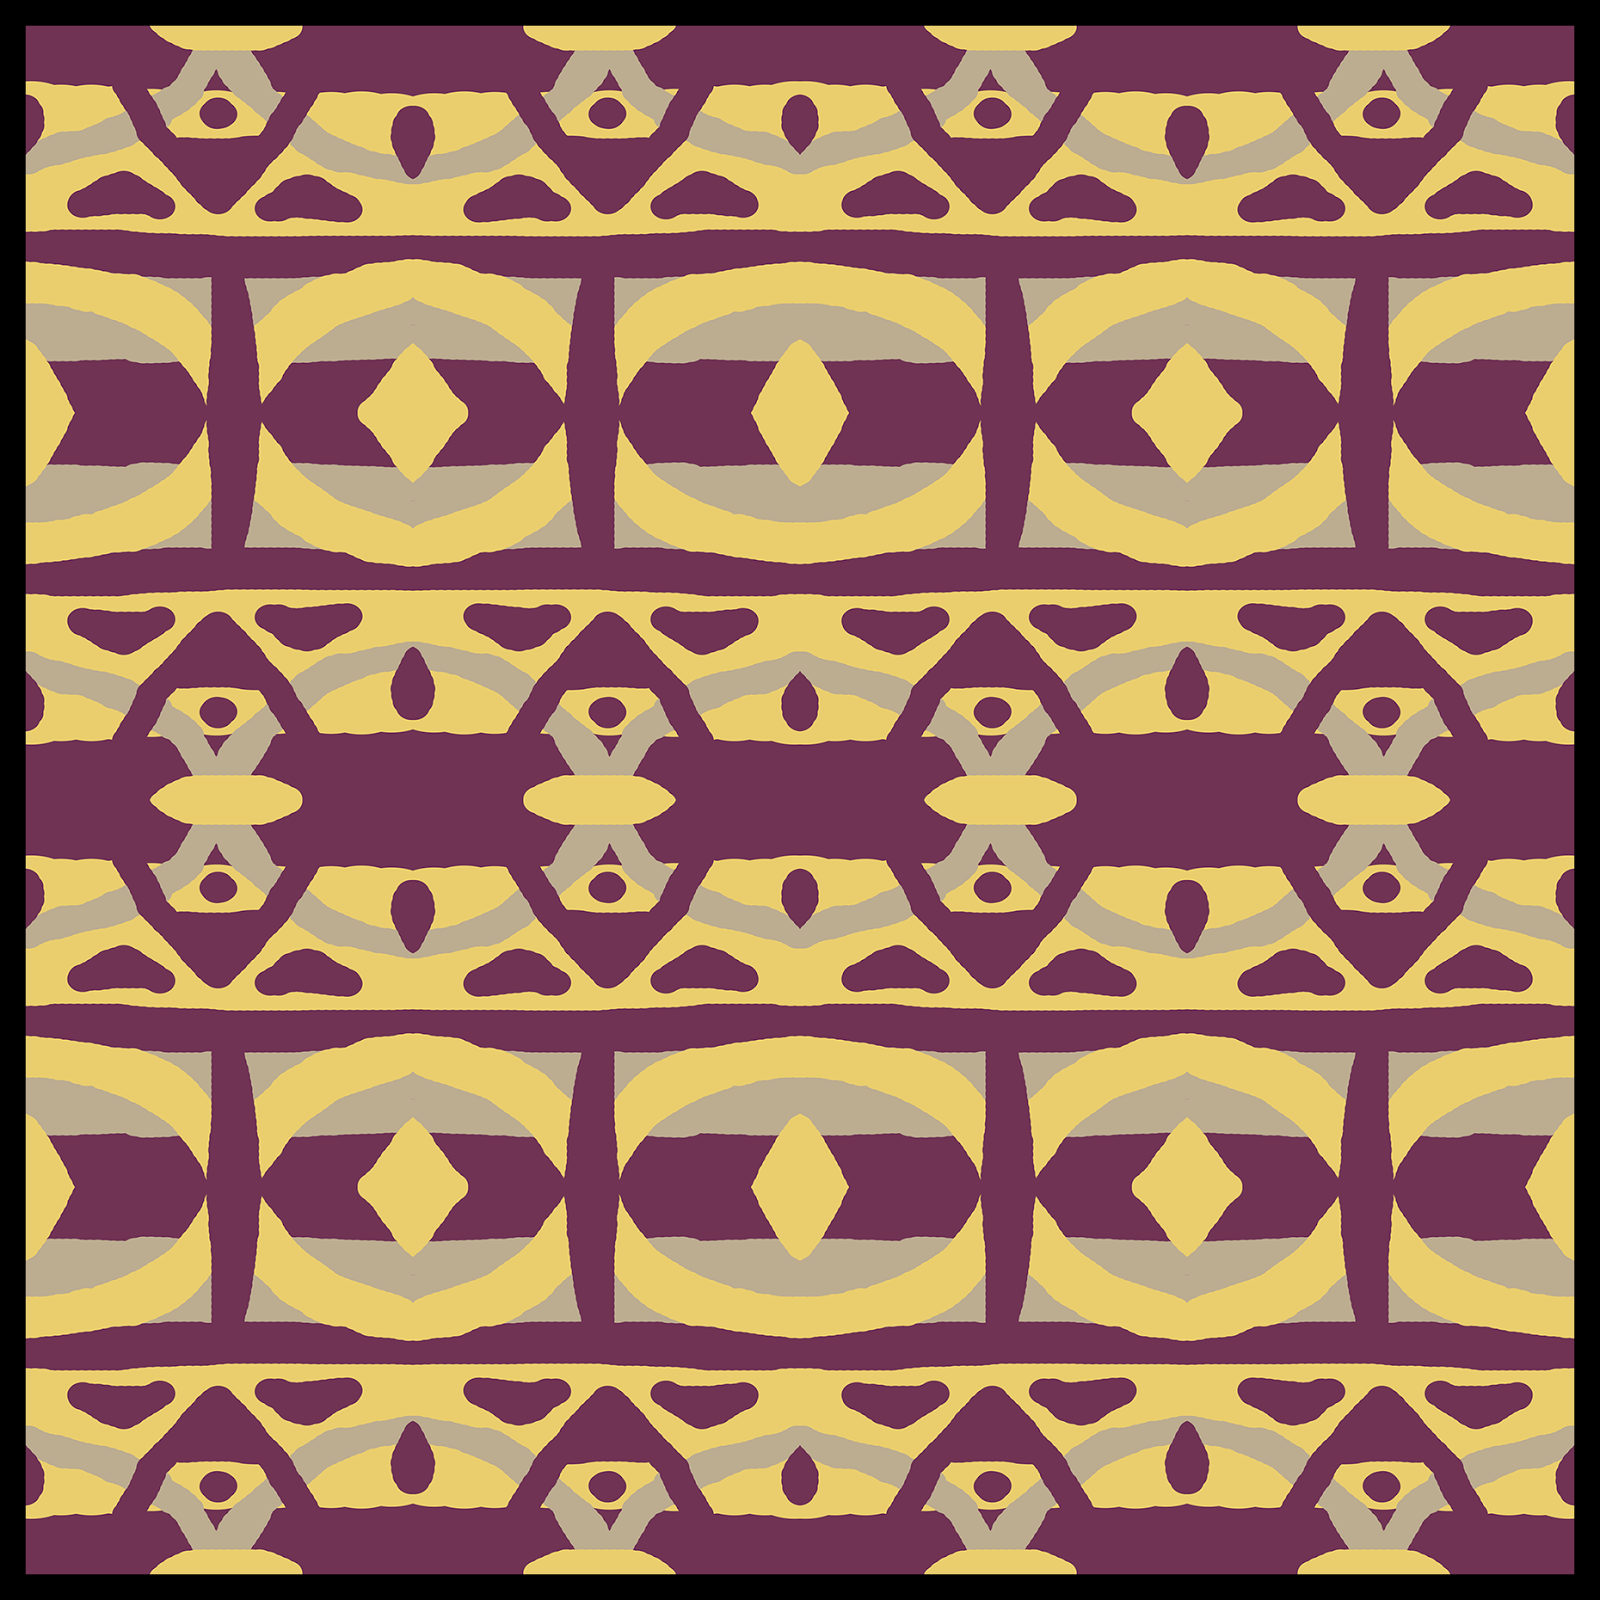 Moroccan style abstract digital art in purple, grey and yellow.